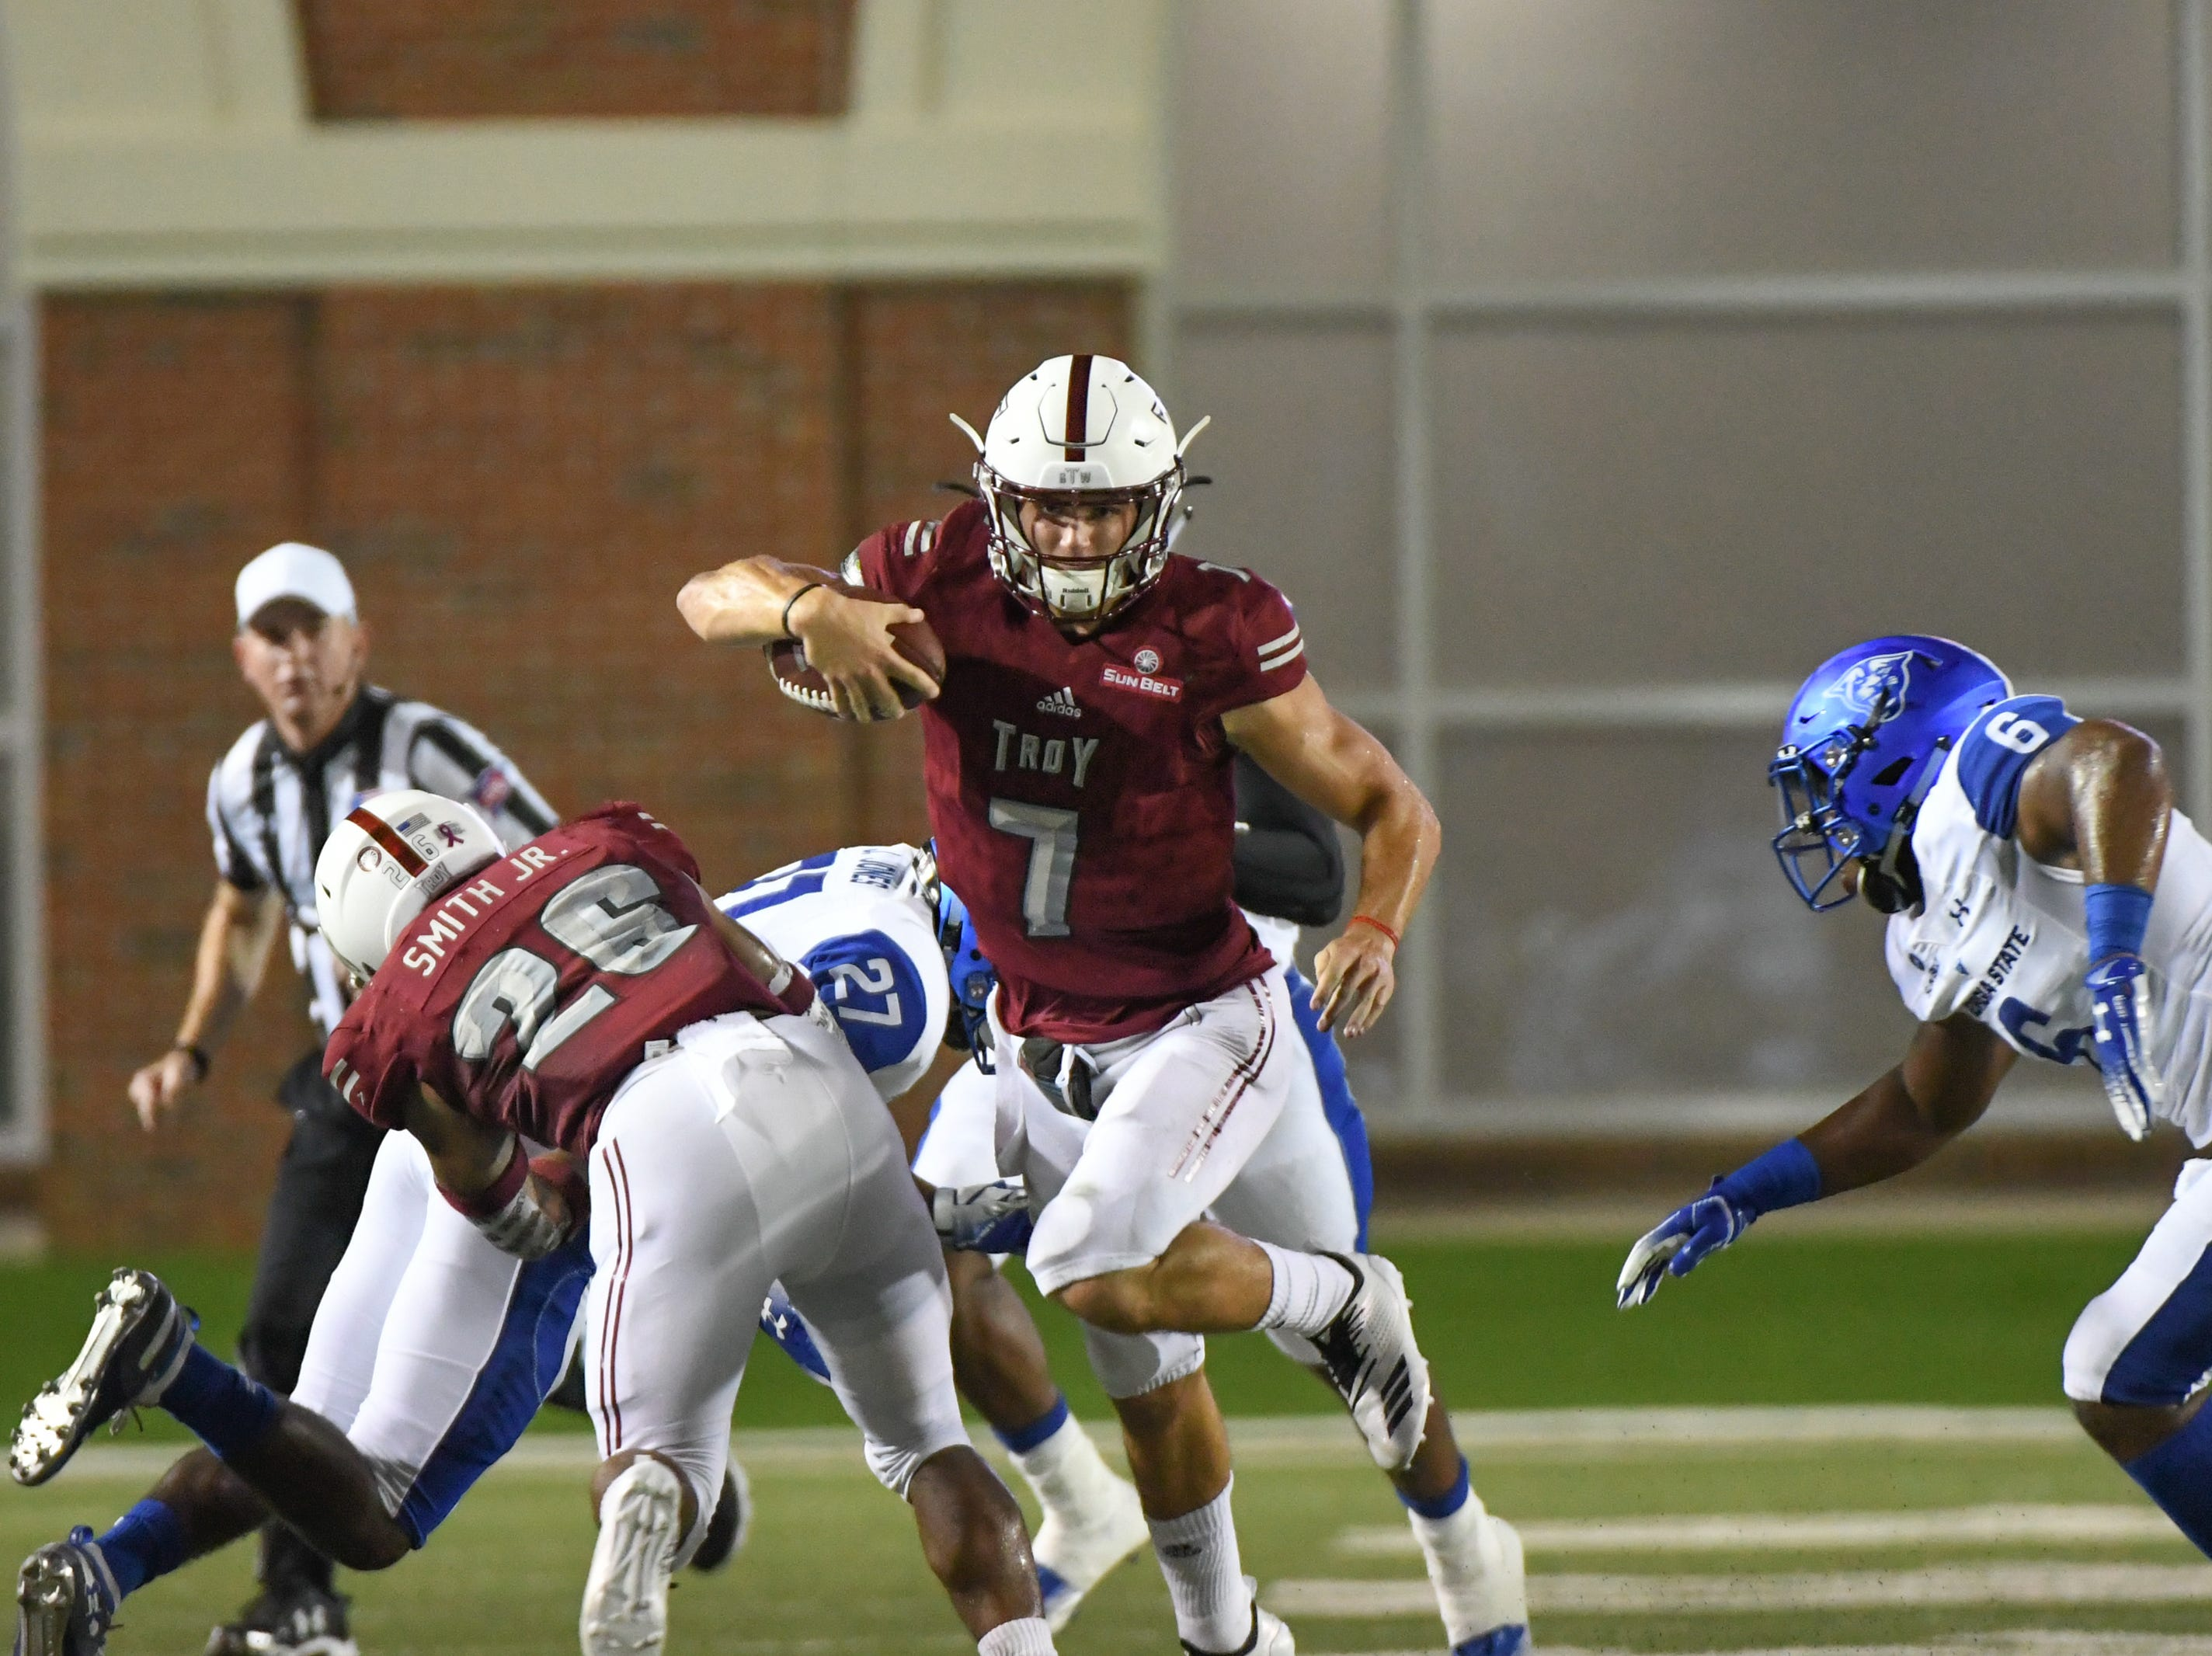 Troy Trojans quarterback Kaleb Barker (7) breaks through for a gain against Georgia State at Veteran's Memorial Stadium in Troy, Ala., on Thursday, Oct. 4, 2018. (Chip Dillard/Special to the Montgomery Advertiser)